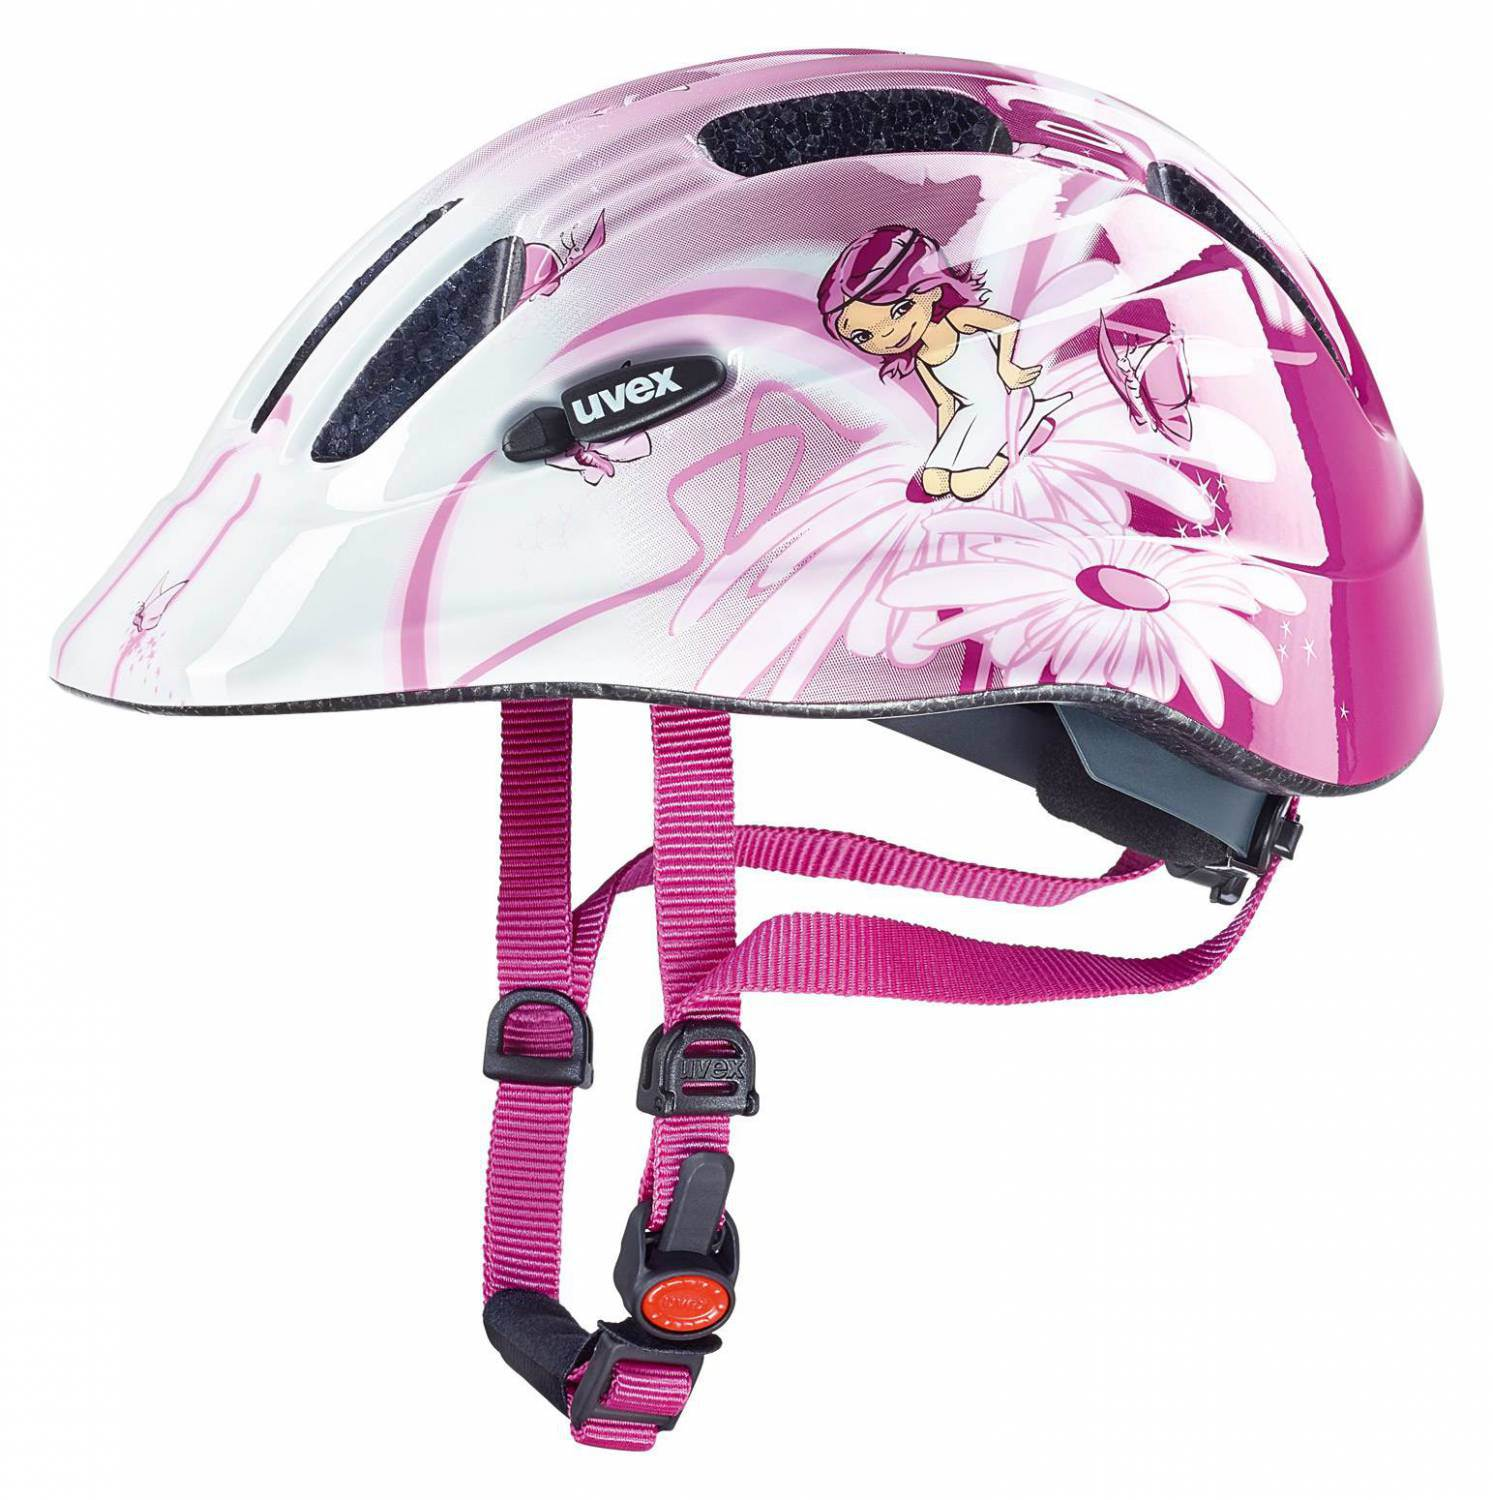 uvex-cartoon-kinder-fahrradhelm-gr-ouml-szlig-e-49-55-cm-10-flower-girls-